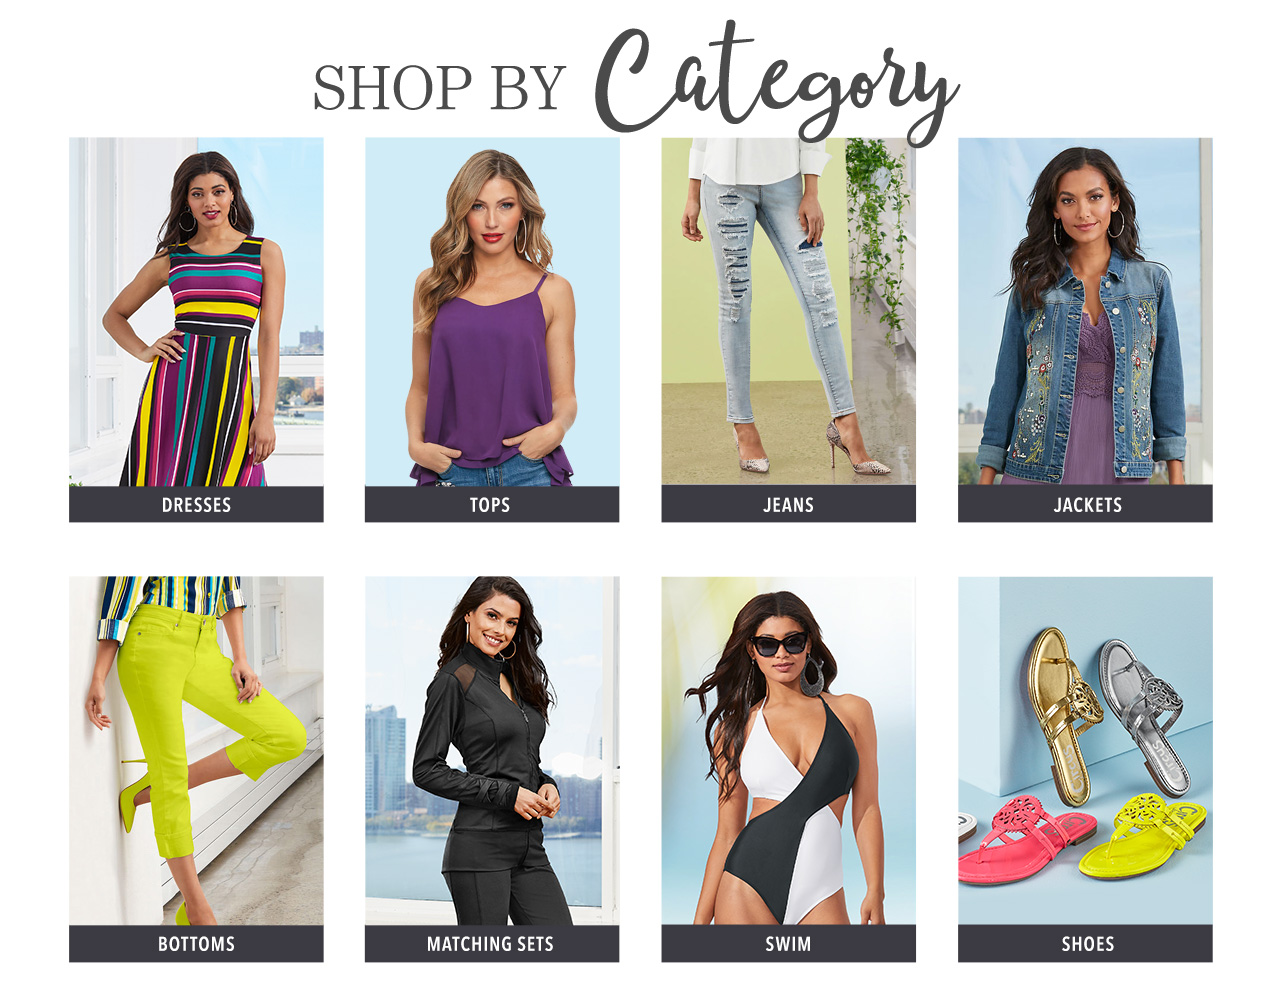 Shop dresses, tops, jeans, jackets,  bottoms, matching sets, swimwear, and shoes today, pay later with K. Jordan Credit.